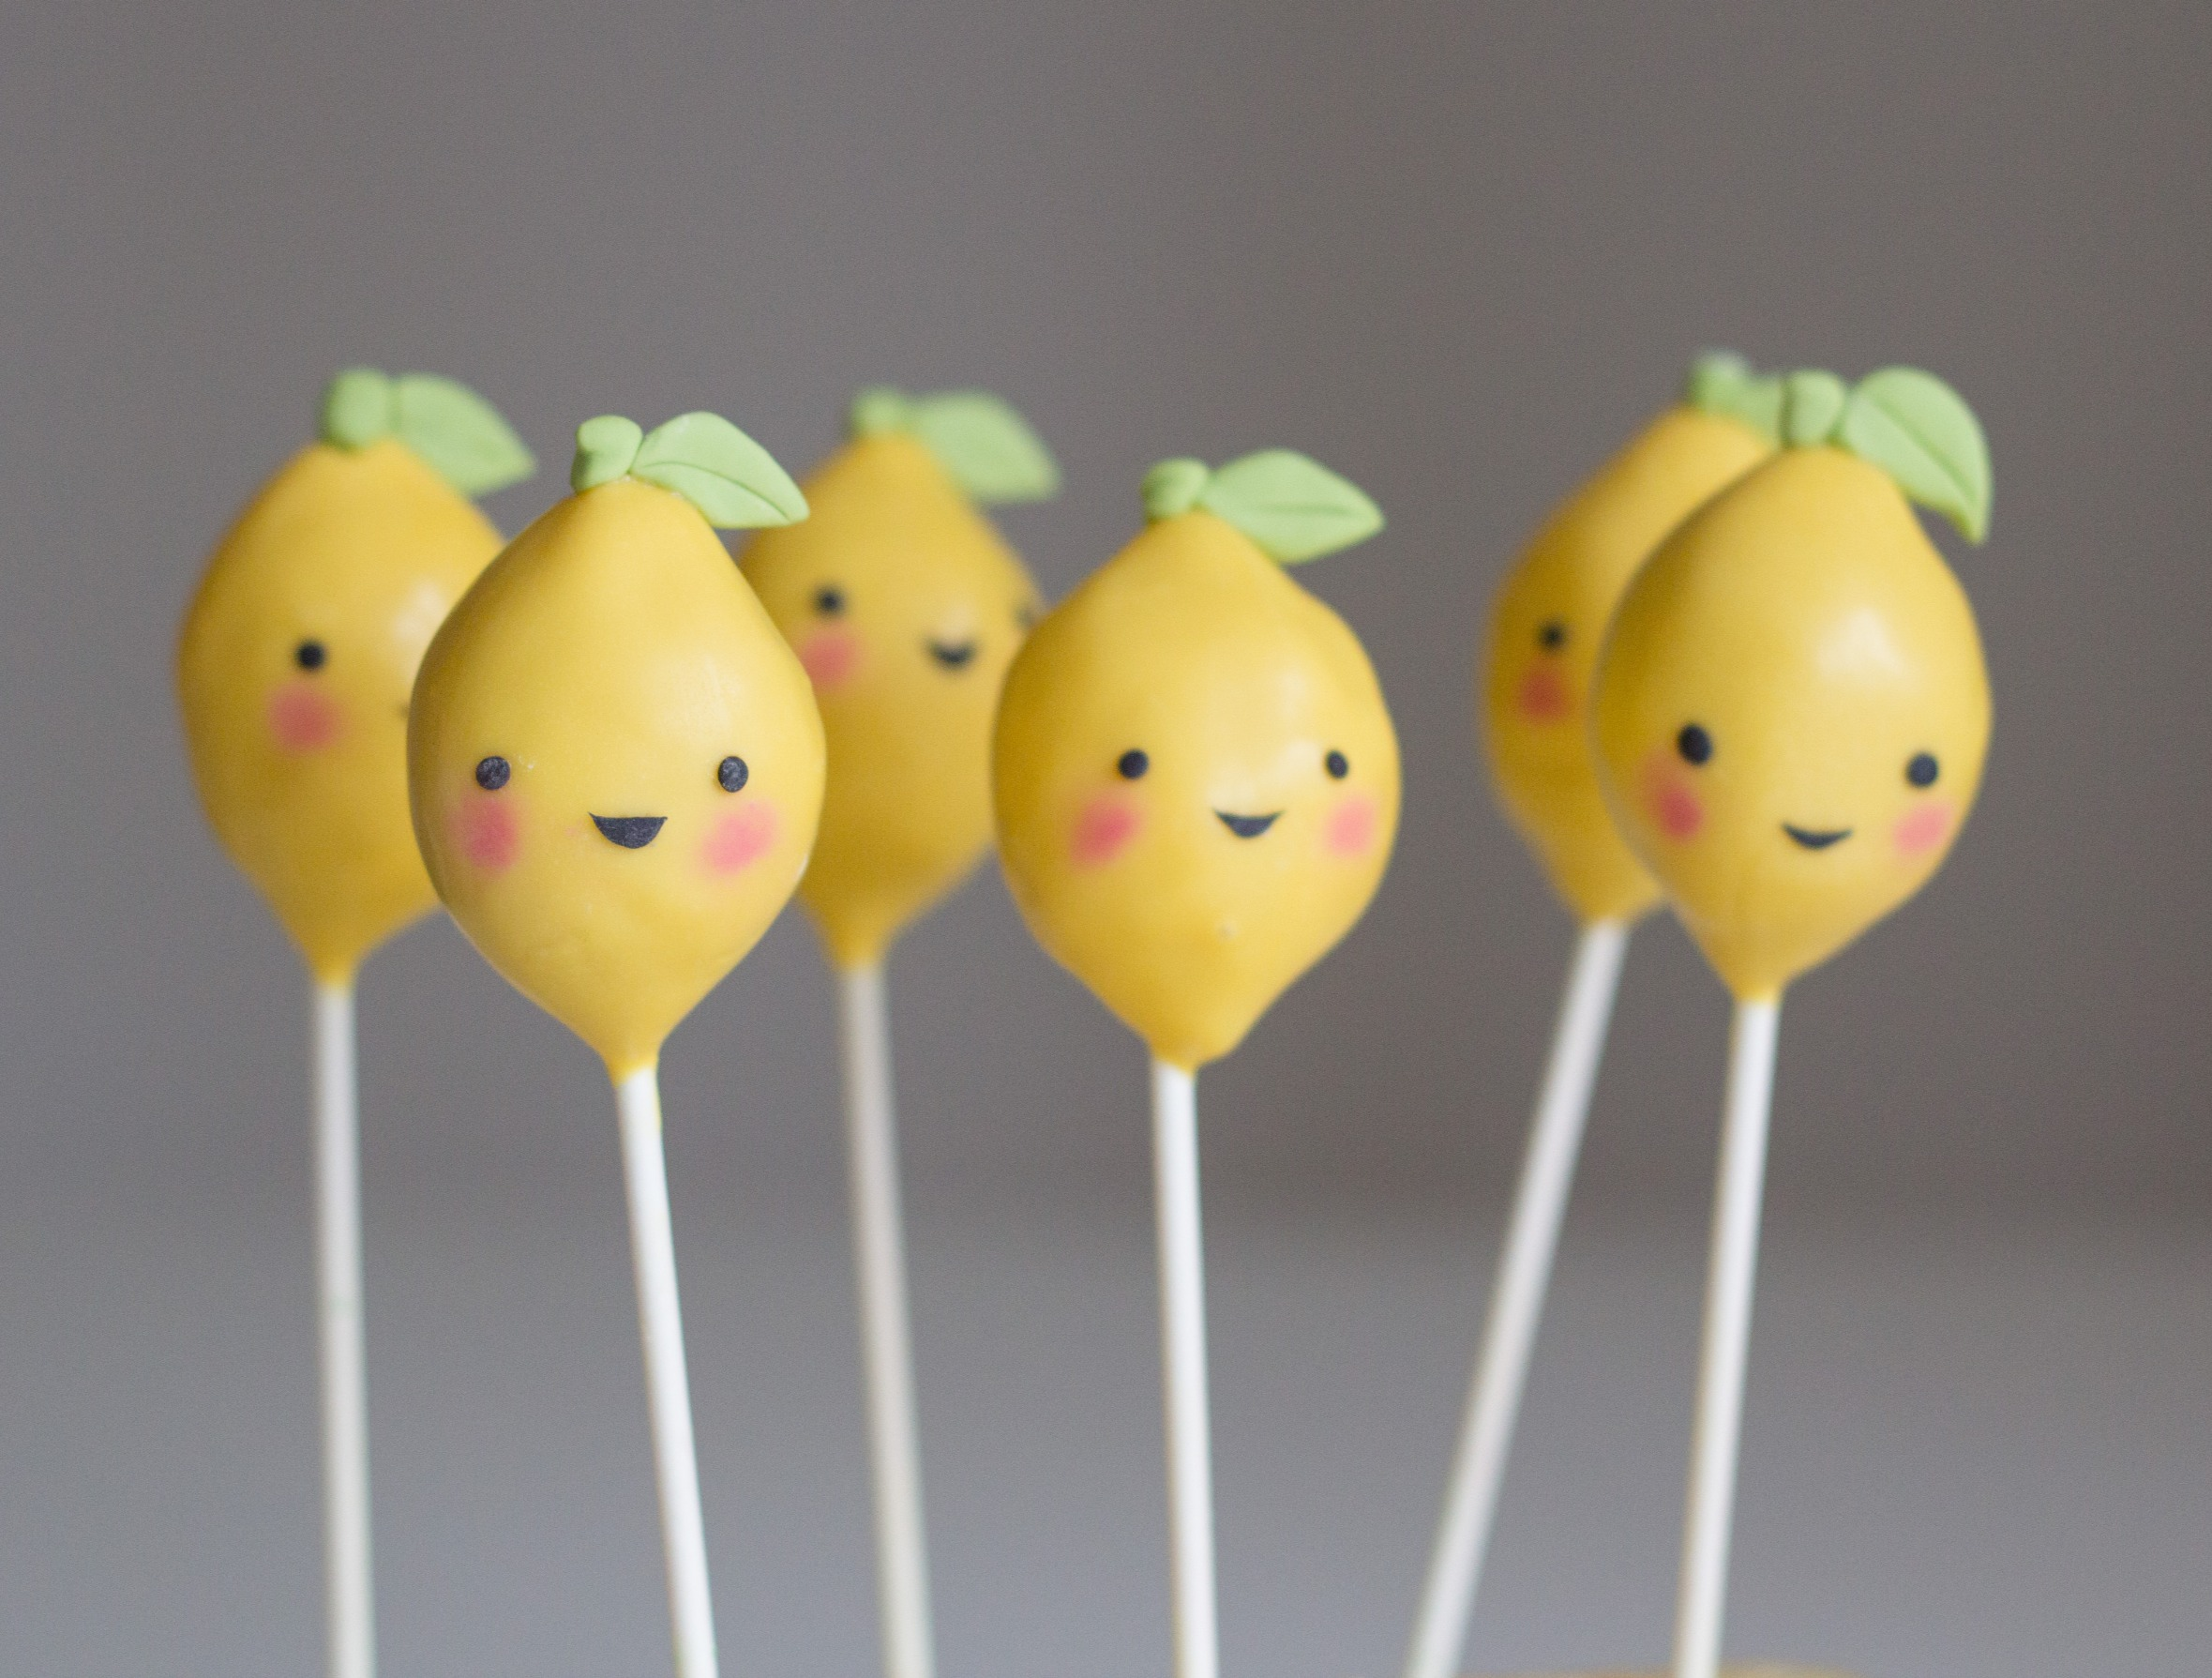 Lemon Heads cake pops